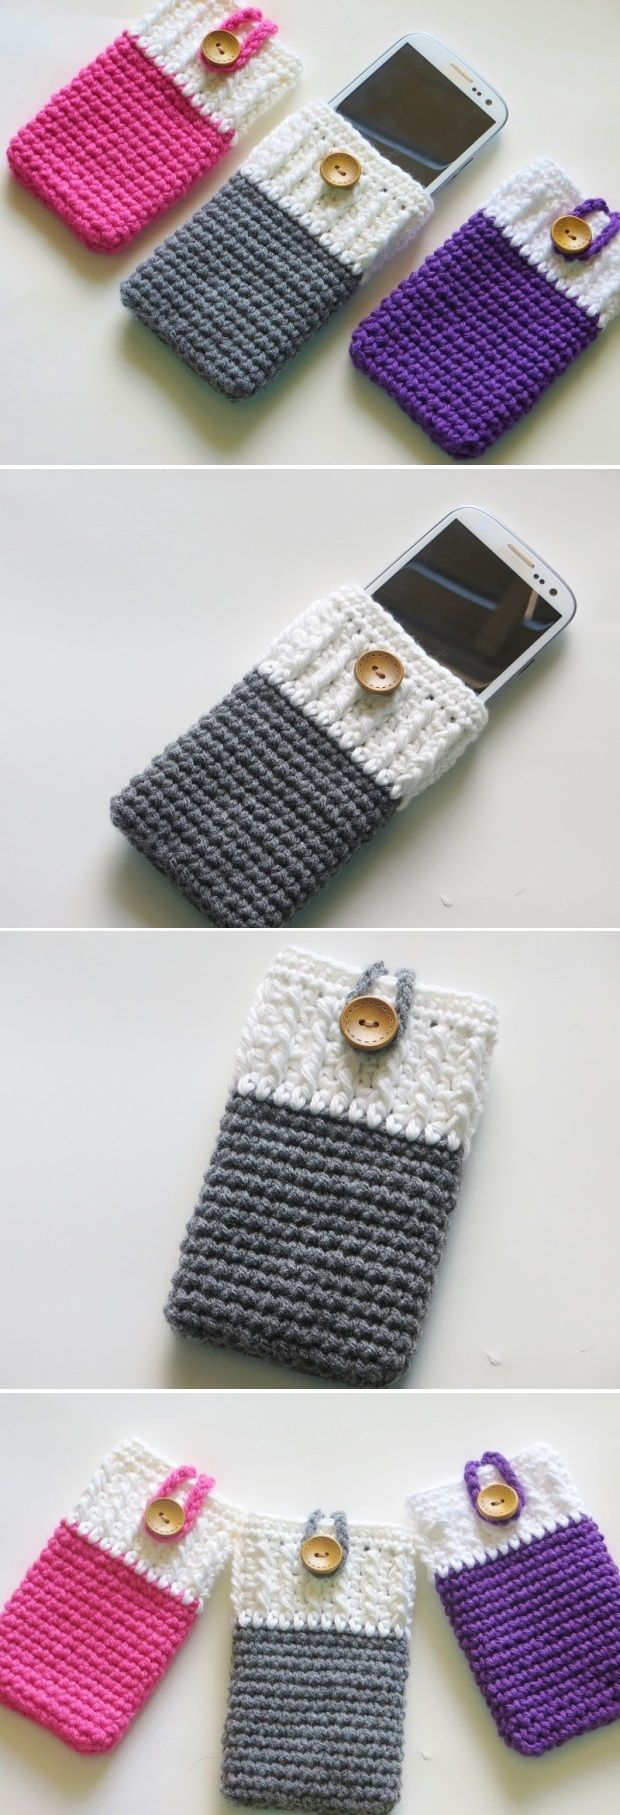 Fun and Useful DIY Crochet Cases Mobile Phone Cozy ༺✿Teresa Restegui http://www.pinterest.com/teretegui/✿༻                                                                                                                                                      More